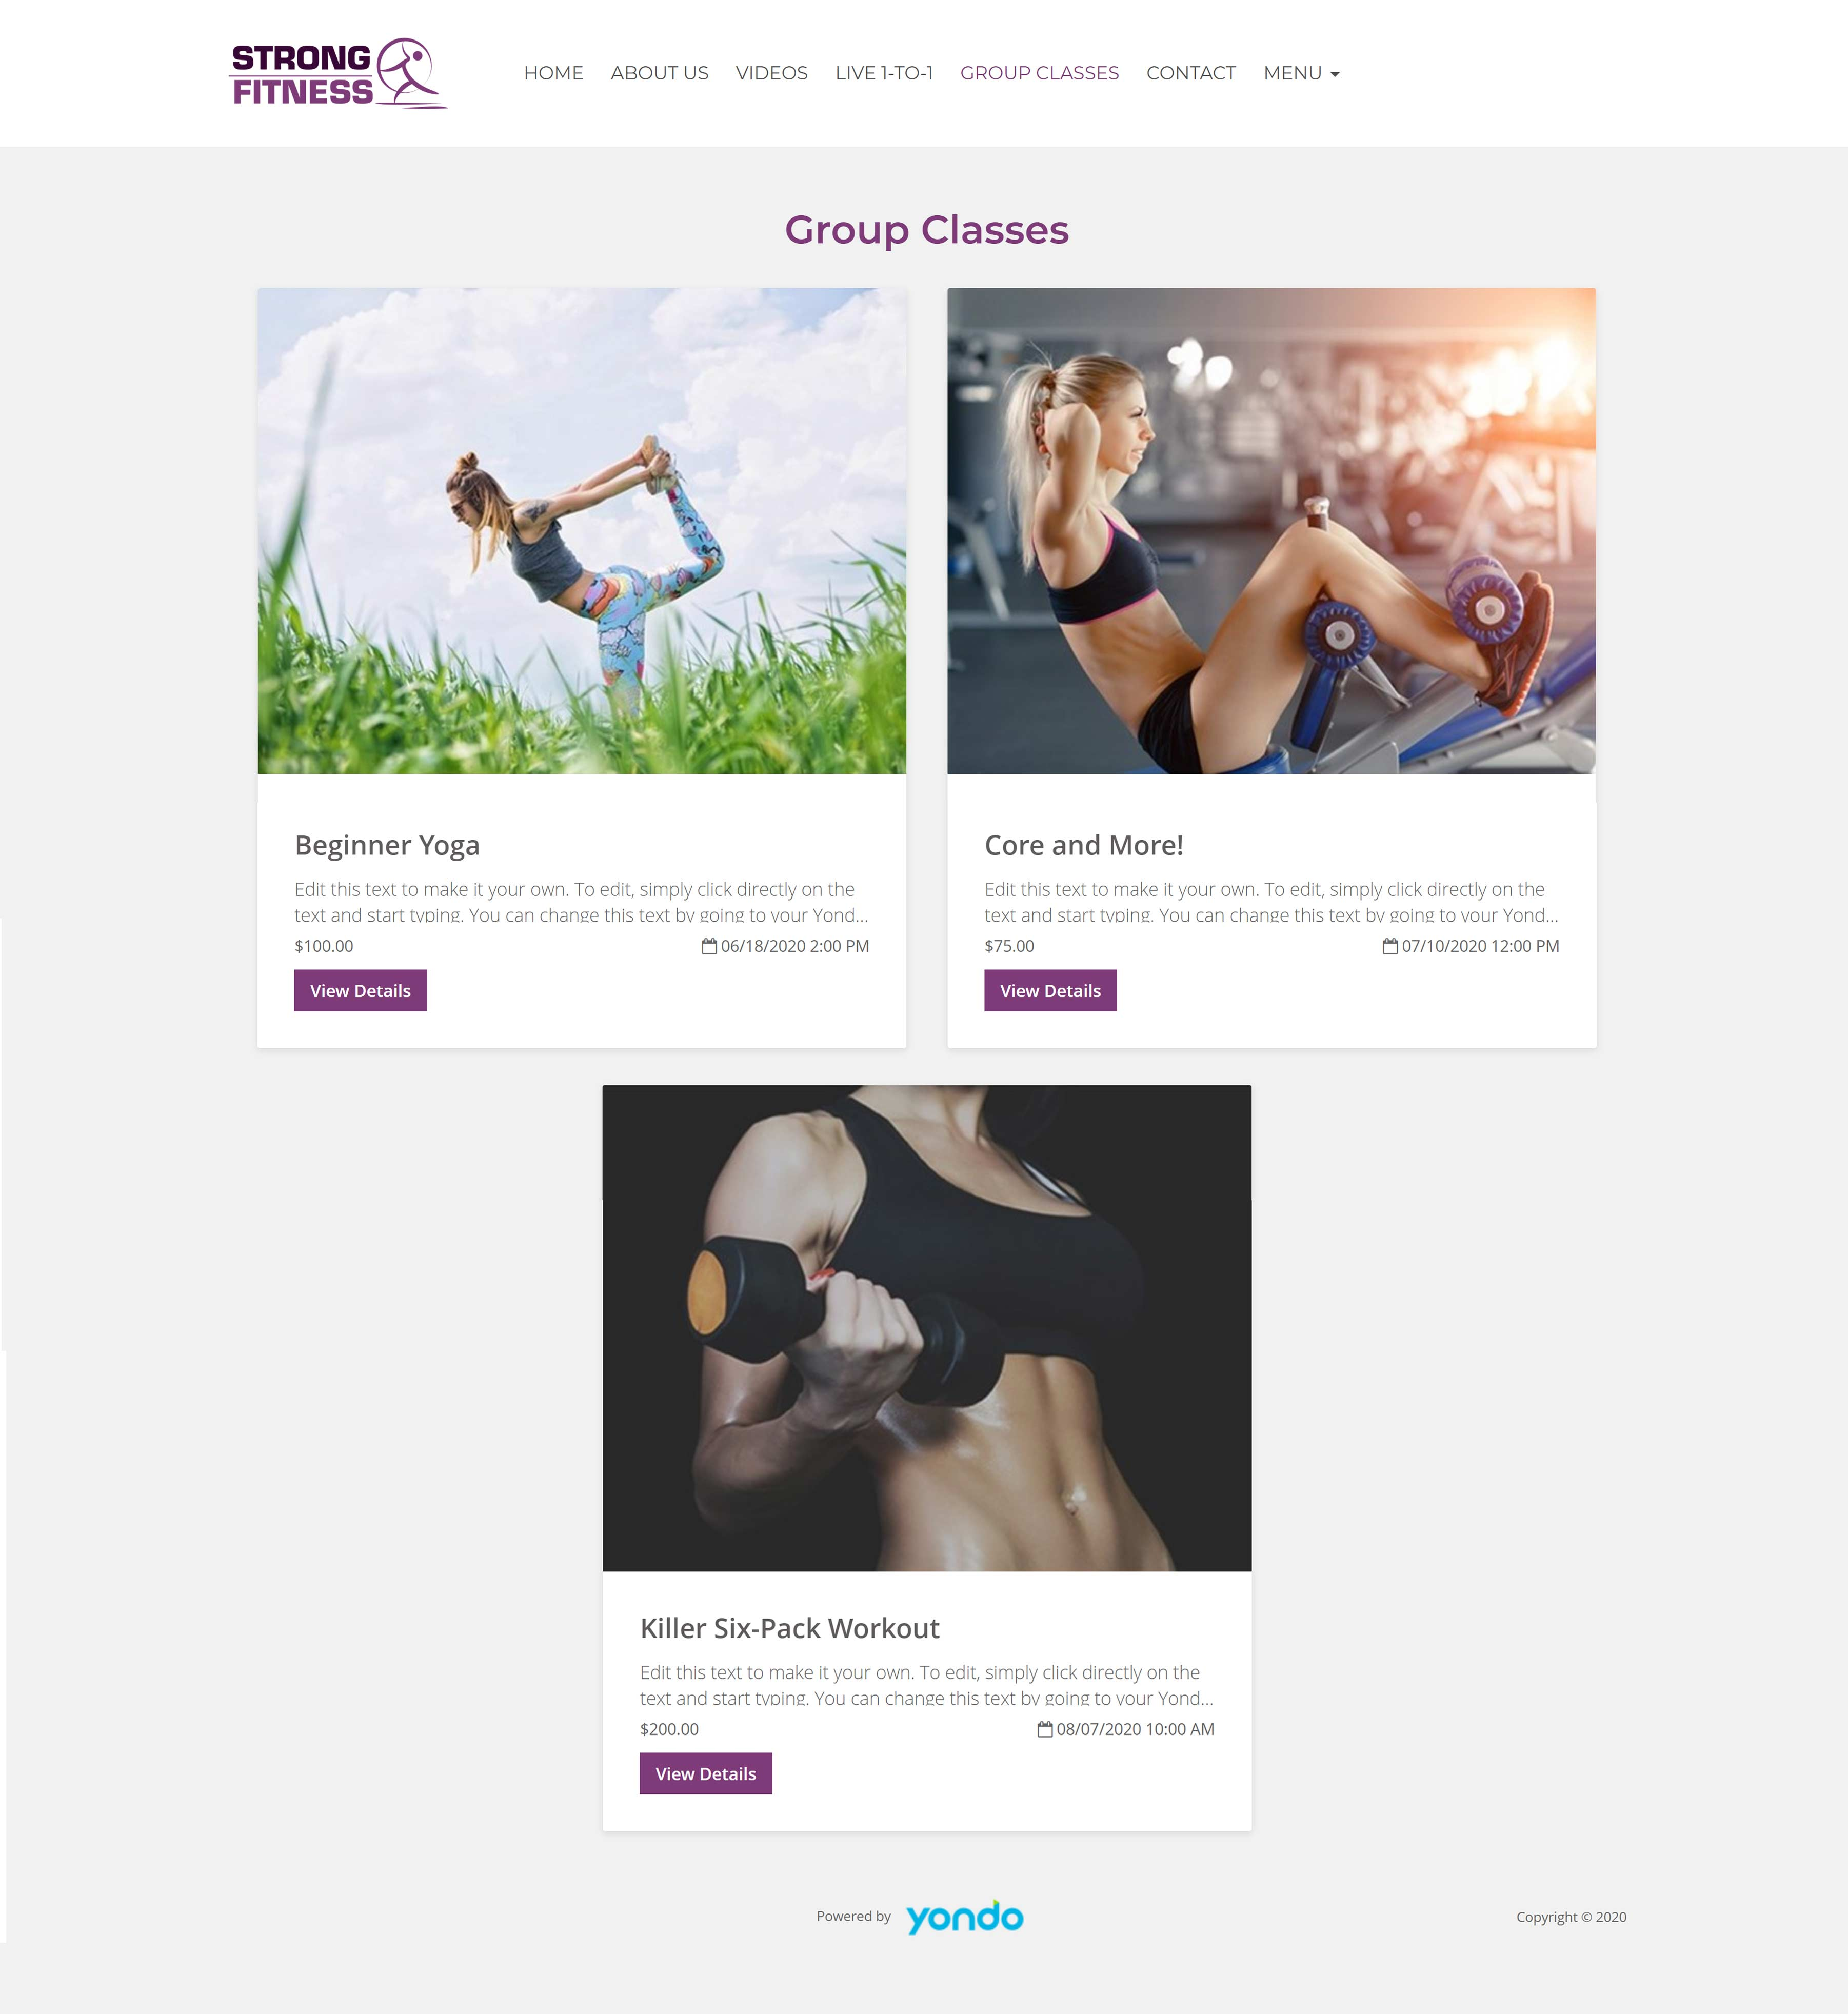 All-In-One Online Fitness Studio Website - Strong Fitness Webinars Page Example